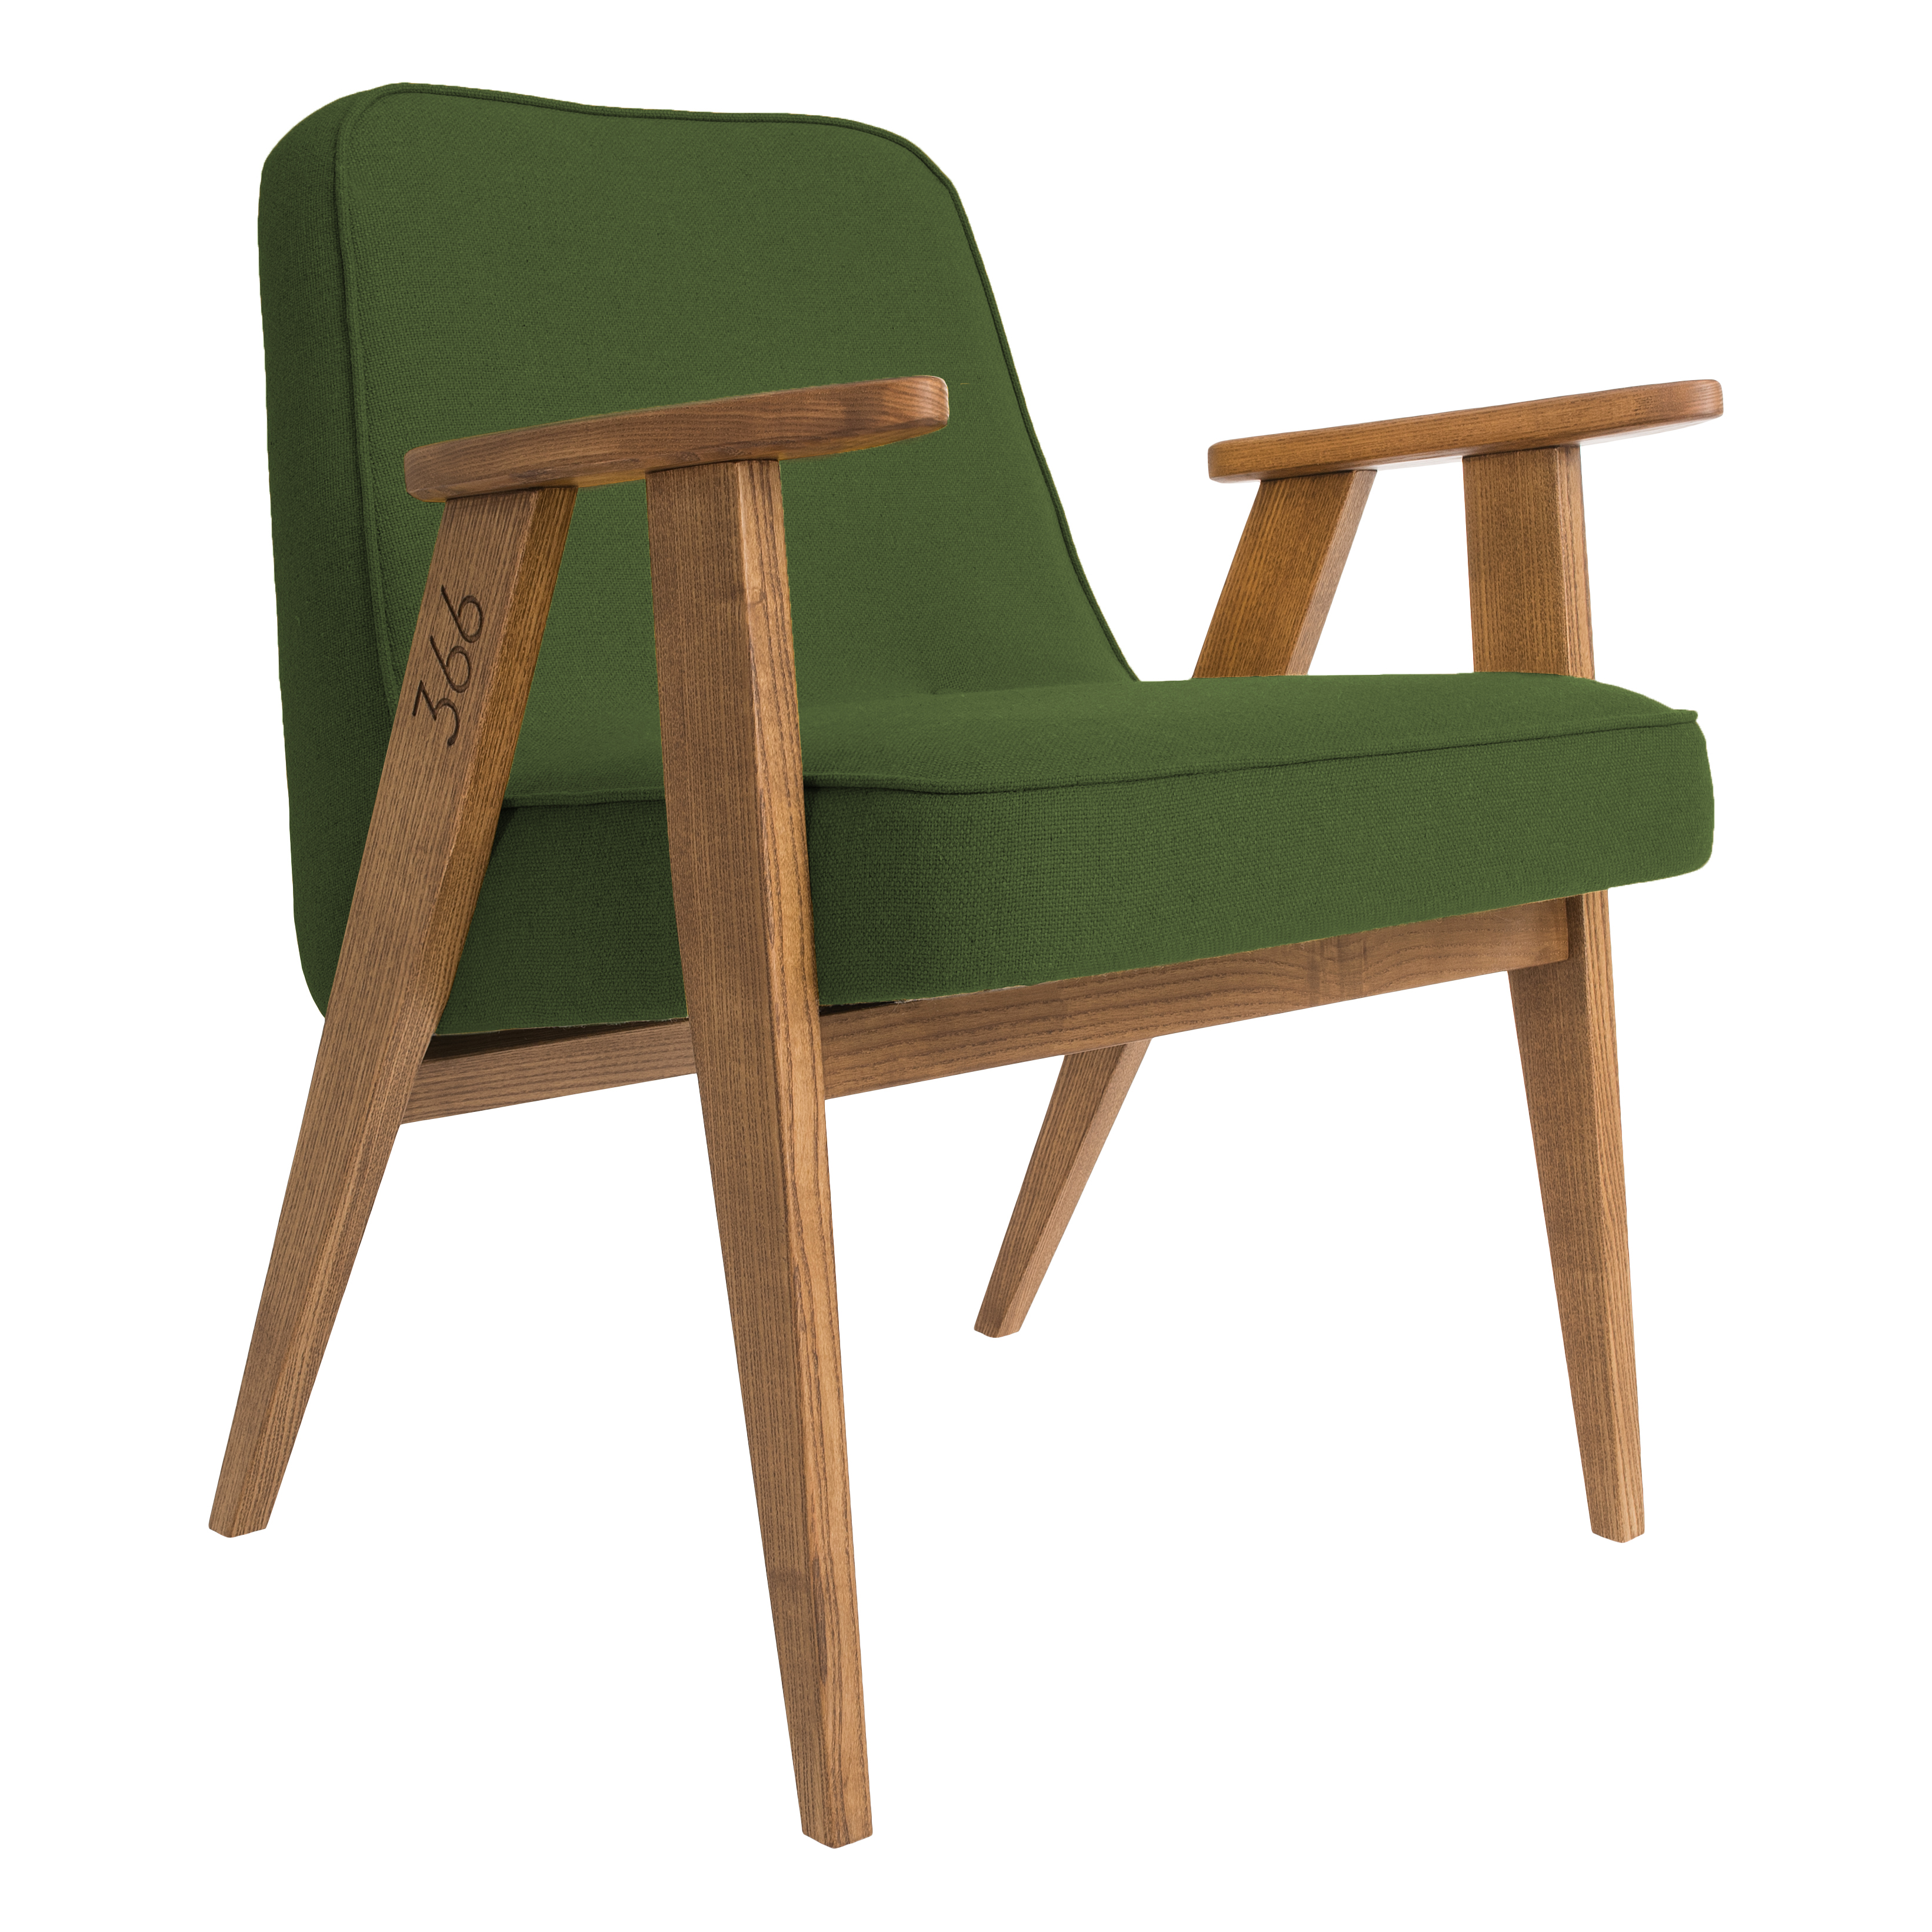 366_Concept_-_366_easy_chair_-_Wool_03_Olive_-_Oak